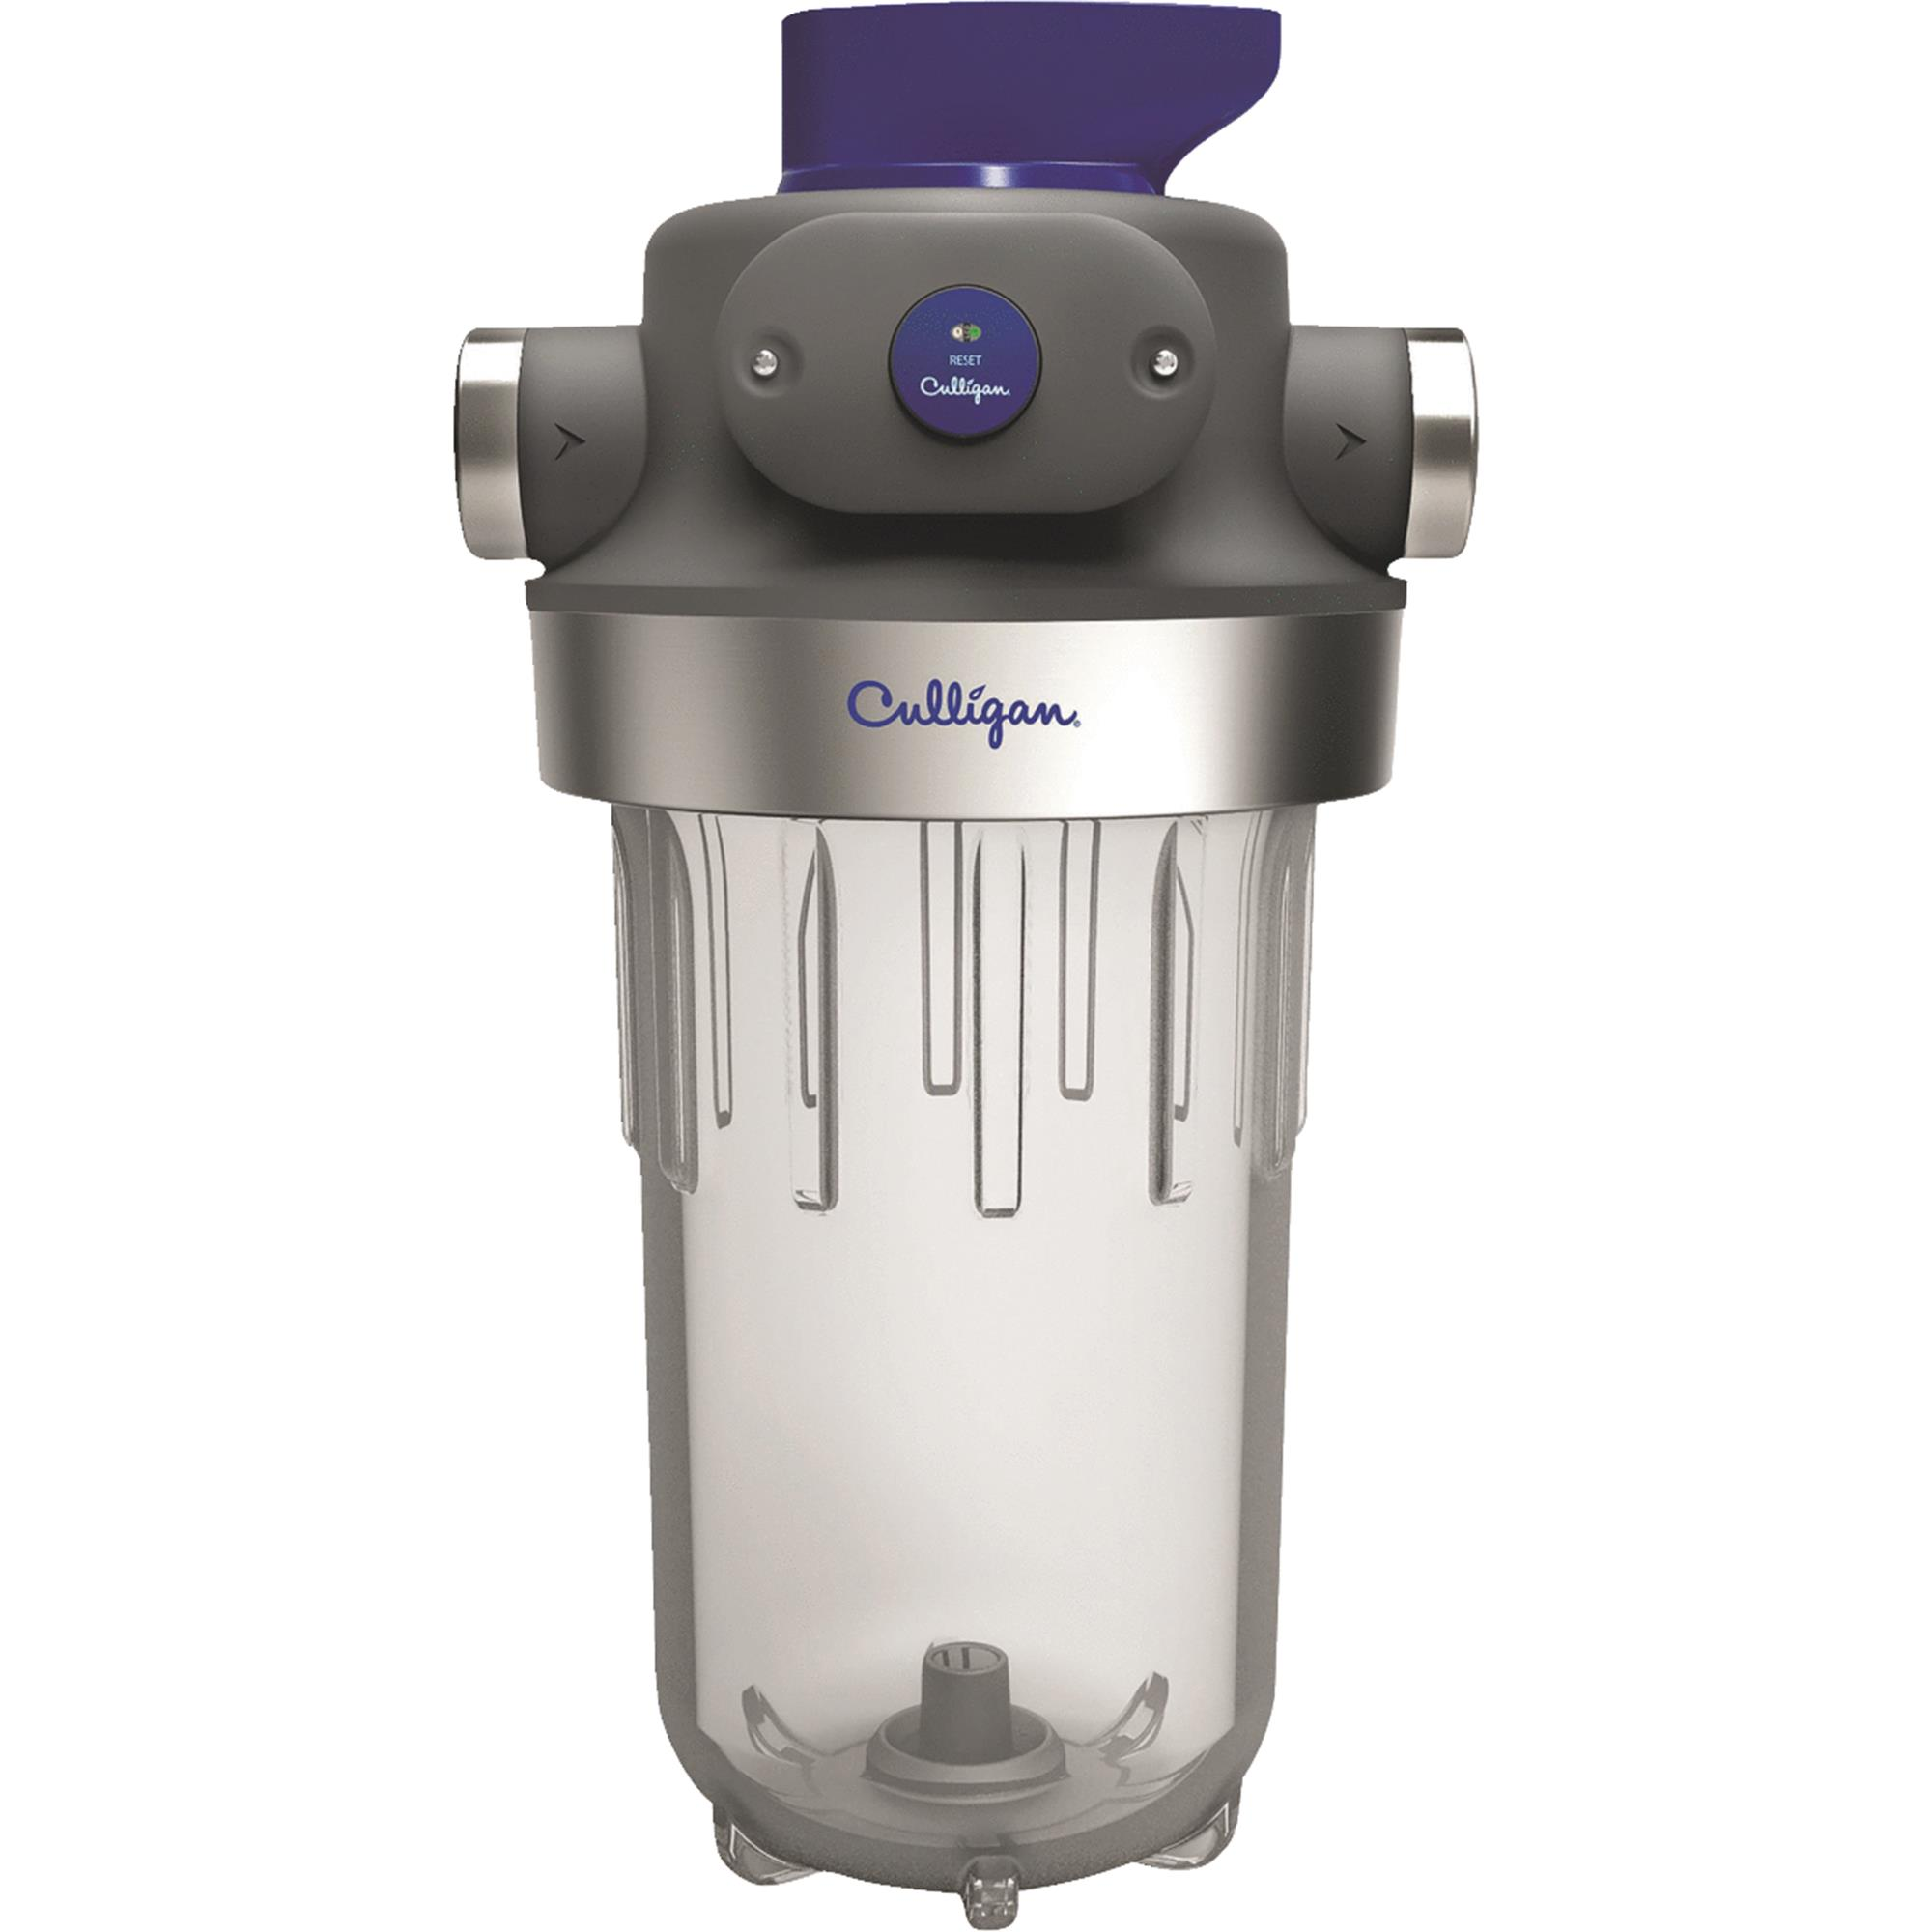 Culligan Whole House Heavy Duty Water Filter System